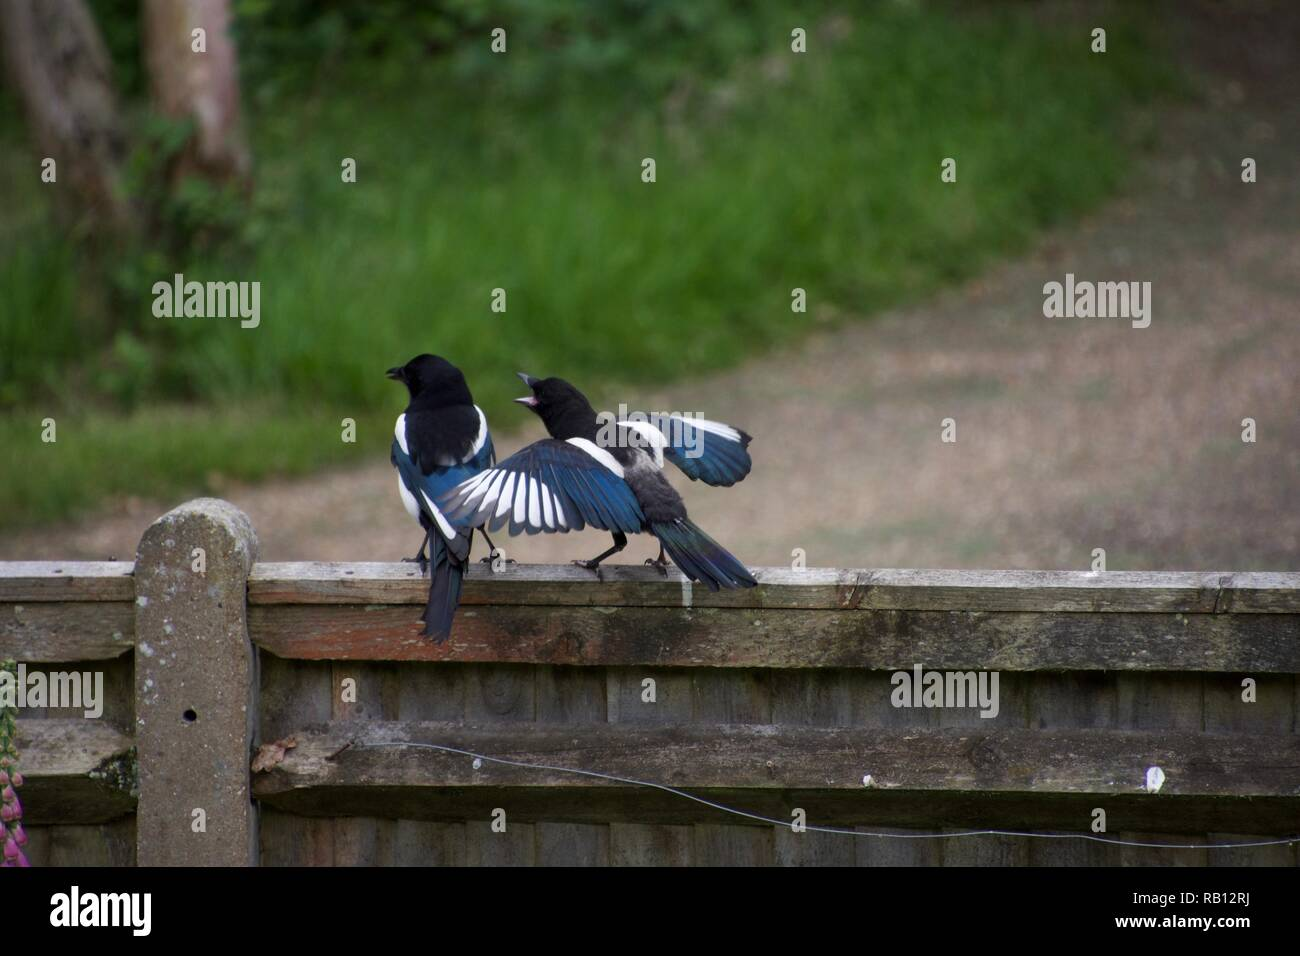 A juvenile magpie on a fence near an English country lane demands food from its parent, flapping its wings and squawking Stock Photo